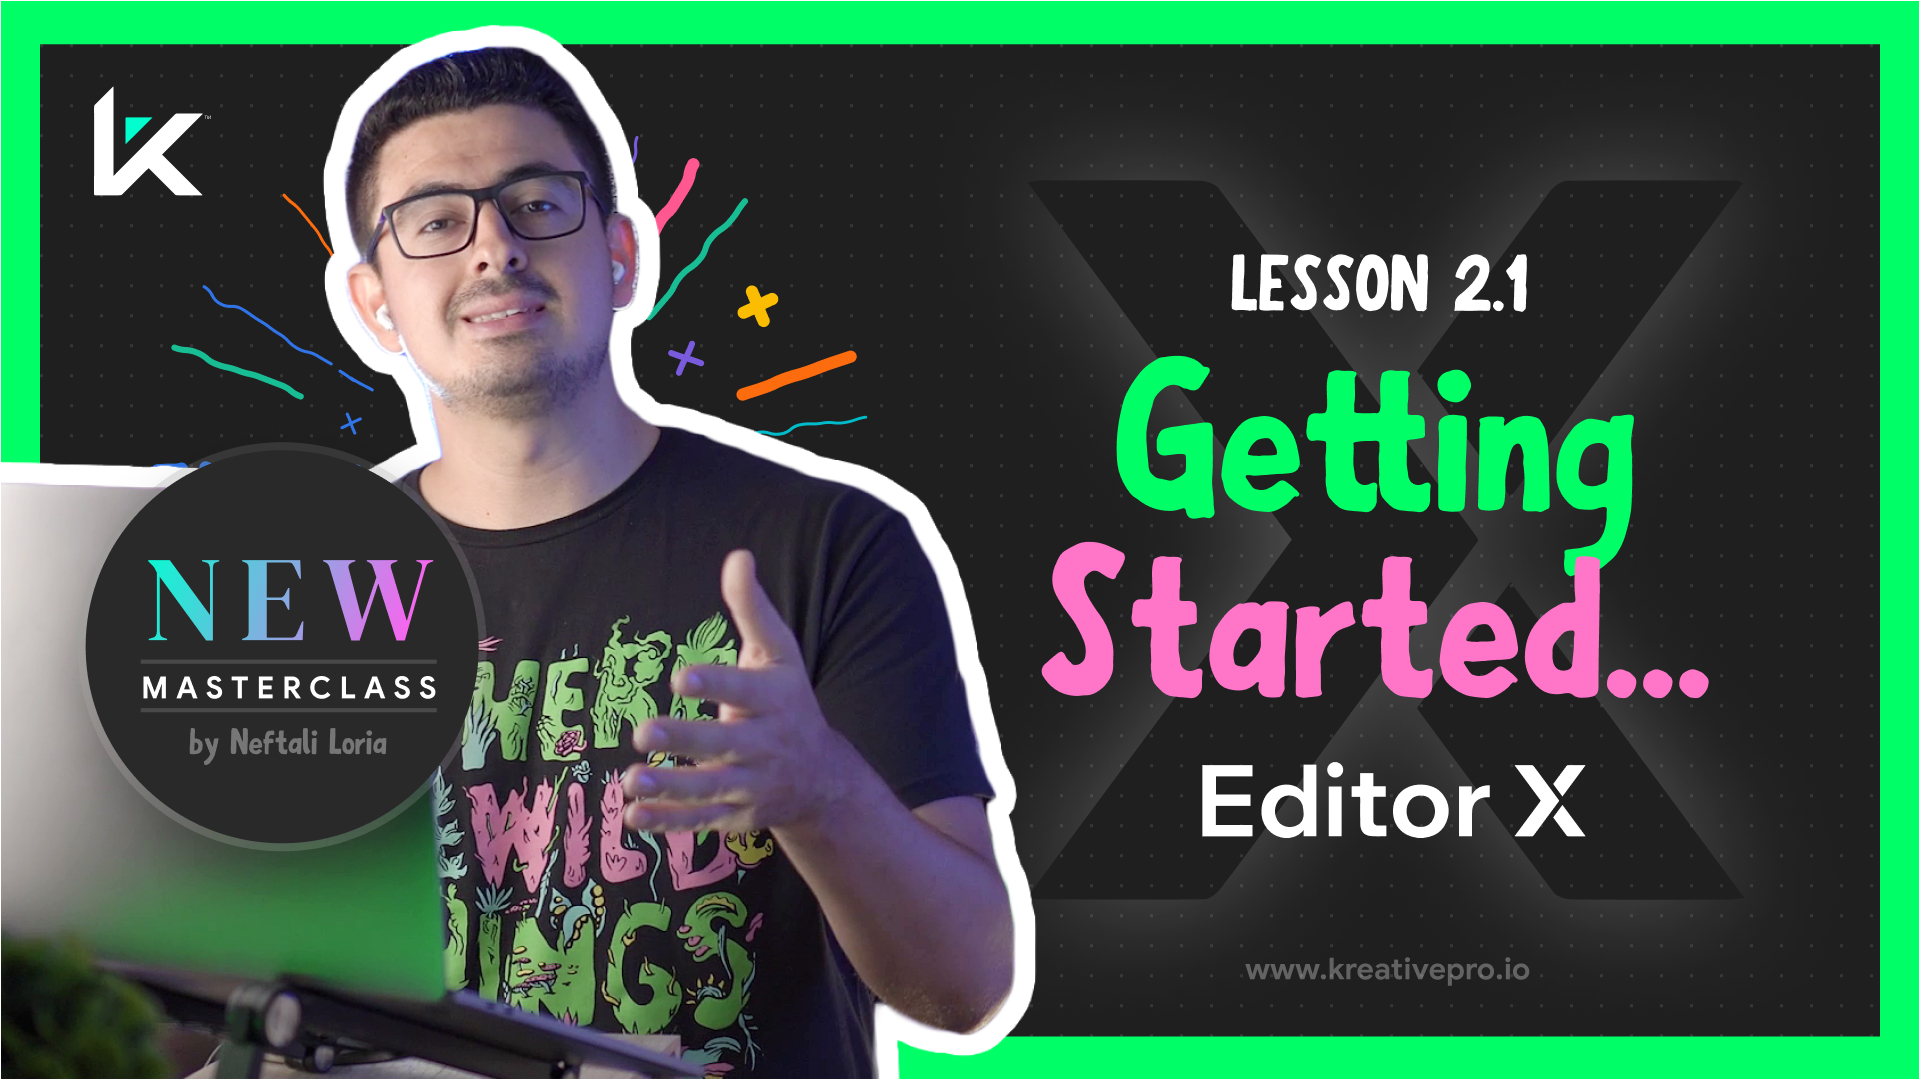 Editor X 2.1 - Getting Started with Editor X